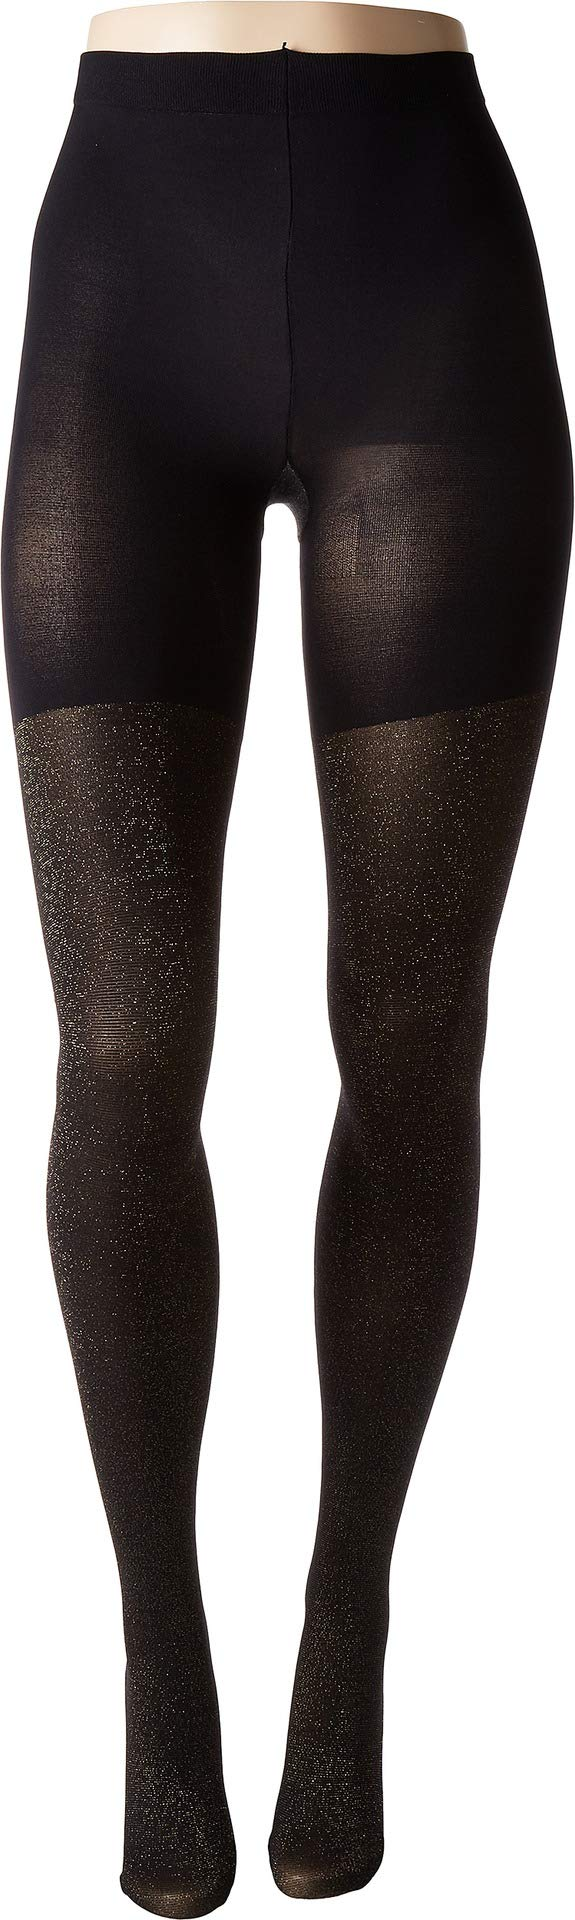 Spanx Women's Metallic Shimmer Mid-Thigh Shaping Tights Gold Shimmer G